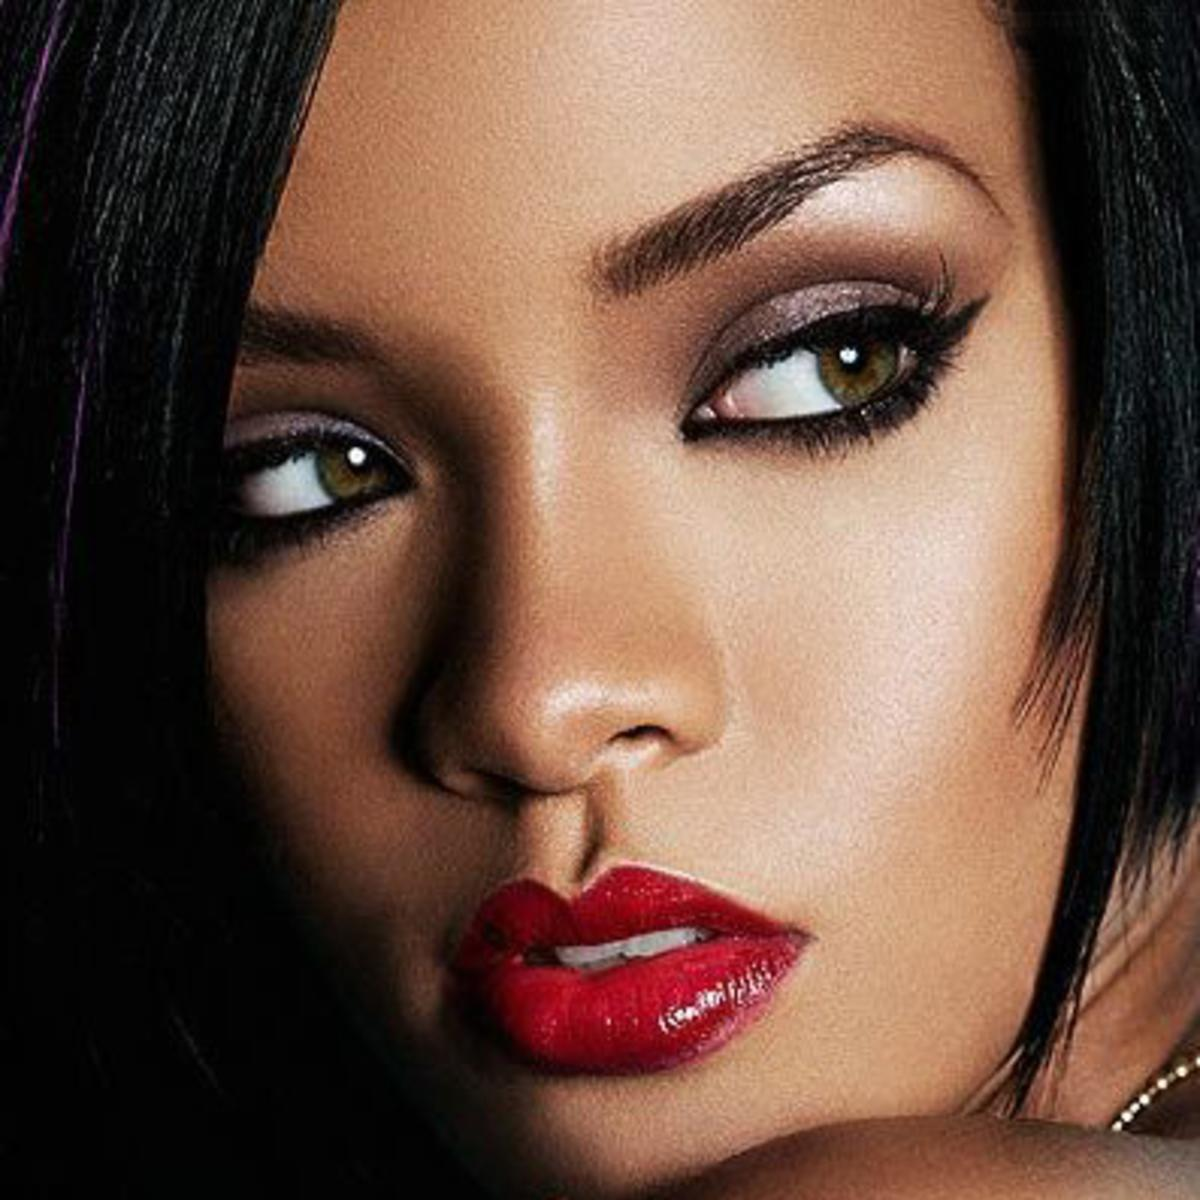 Rihanna Diamonds Audio Lyrics Video Download Mp3 Music Lyrics Music Video